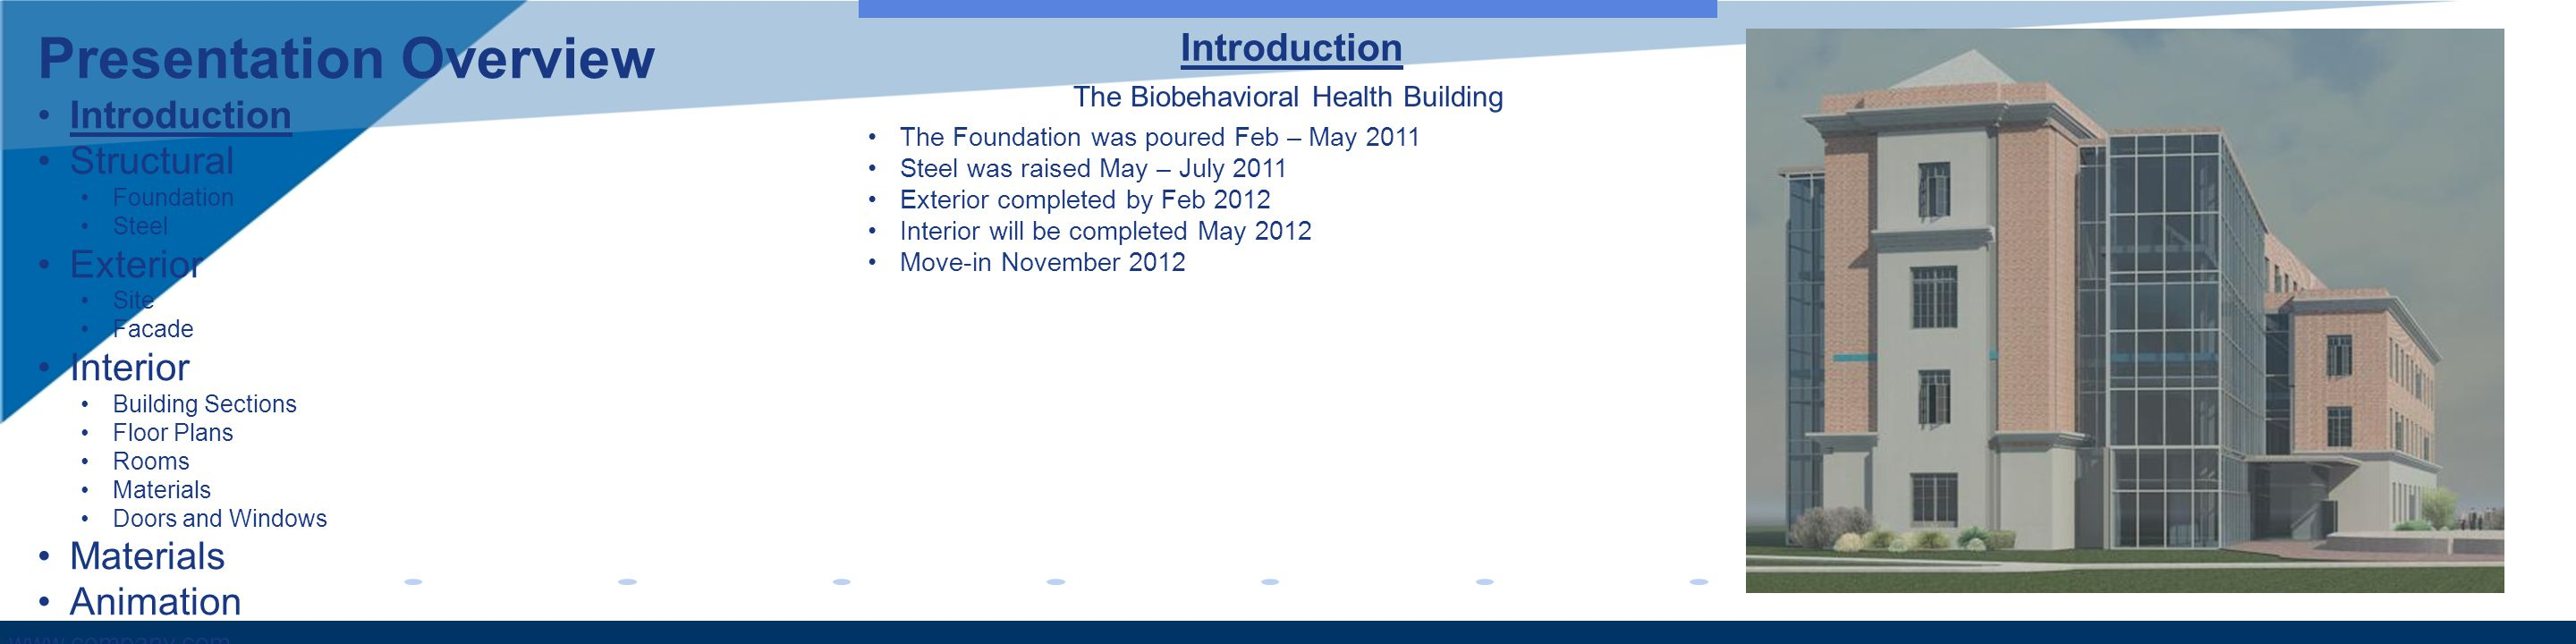 www.company.com Introduction The Biobehavioral Health Building The Foundation was poured Feb – May 2011 Steel was raised May – July 2011 Exterior completed by Feb 2012 Interior will be completed May 2012 Move-in November 2012 Presentation Overview Introduction Structural Foundation Steel Exterior Site Facade Interior Building Sections Floor Plans Rooms Materials Doors and Windows Materials Animation